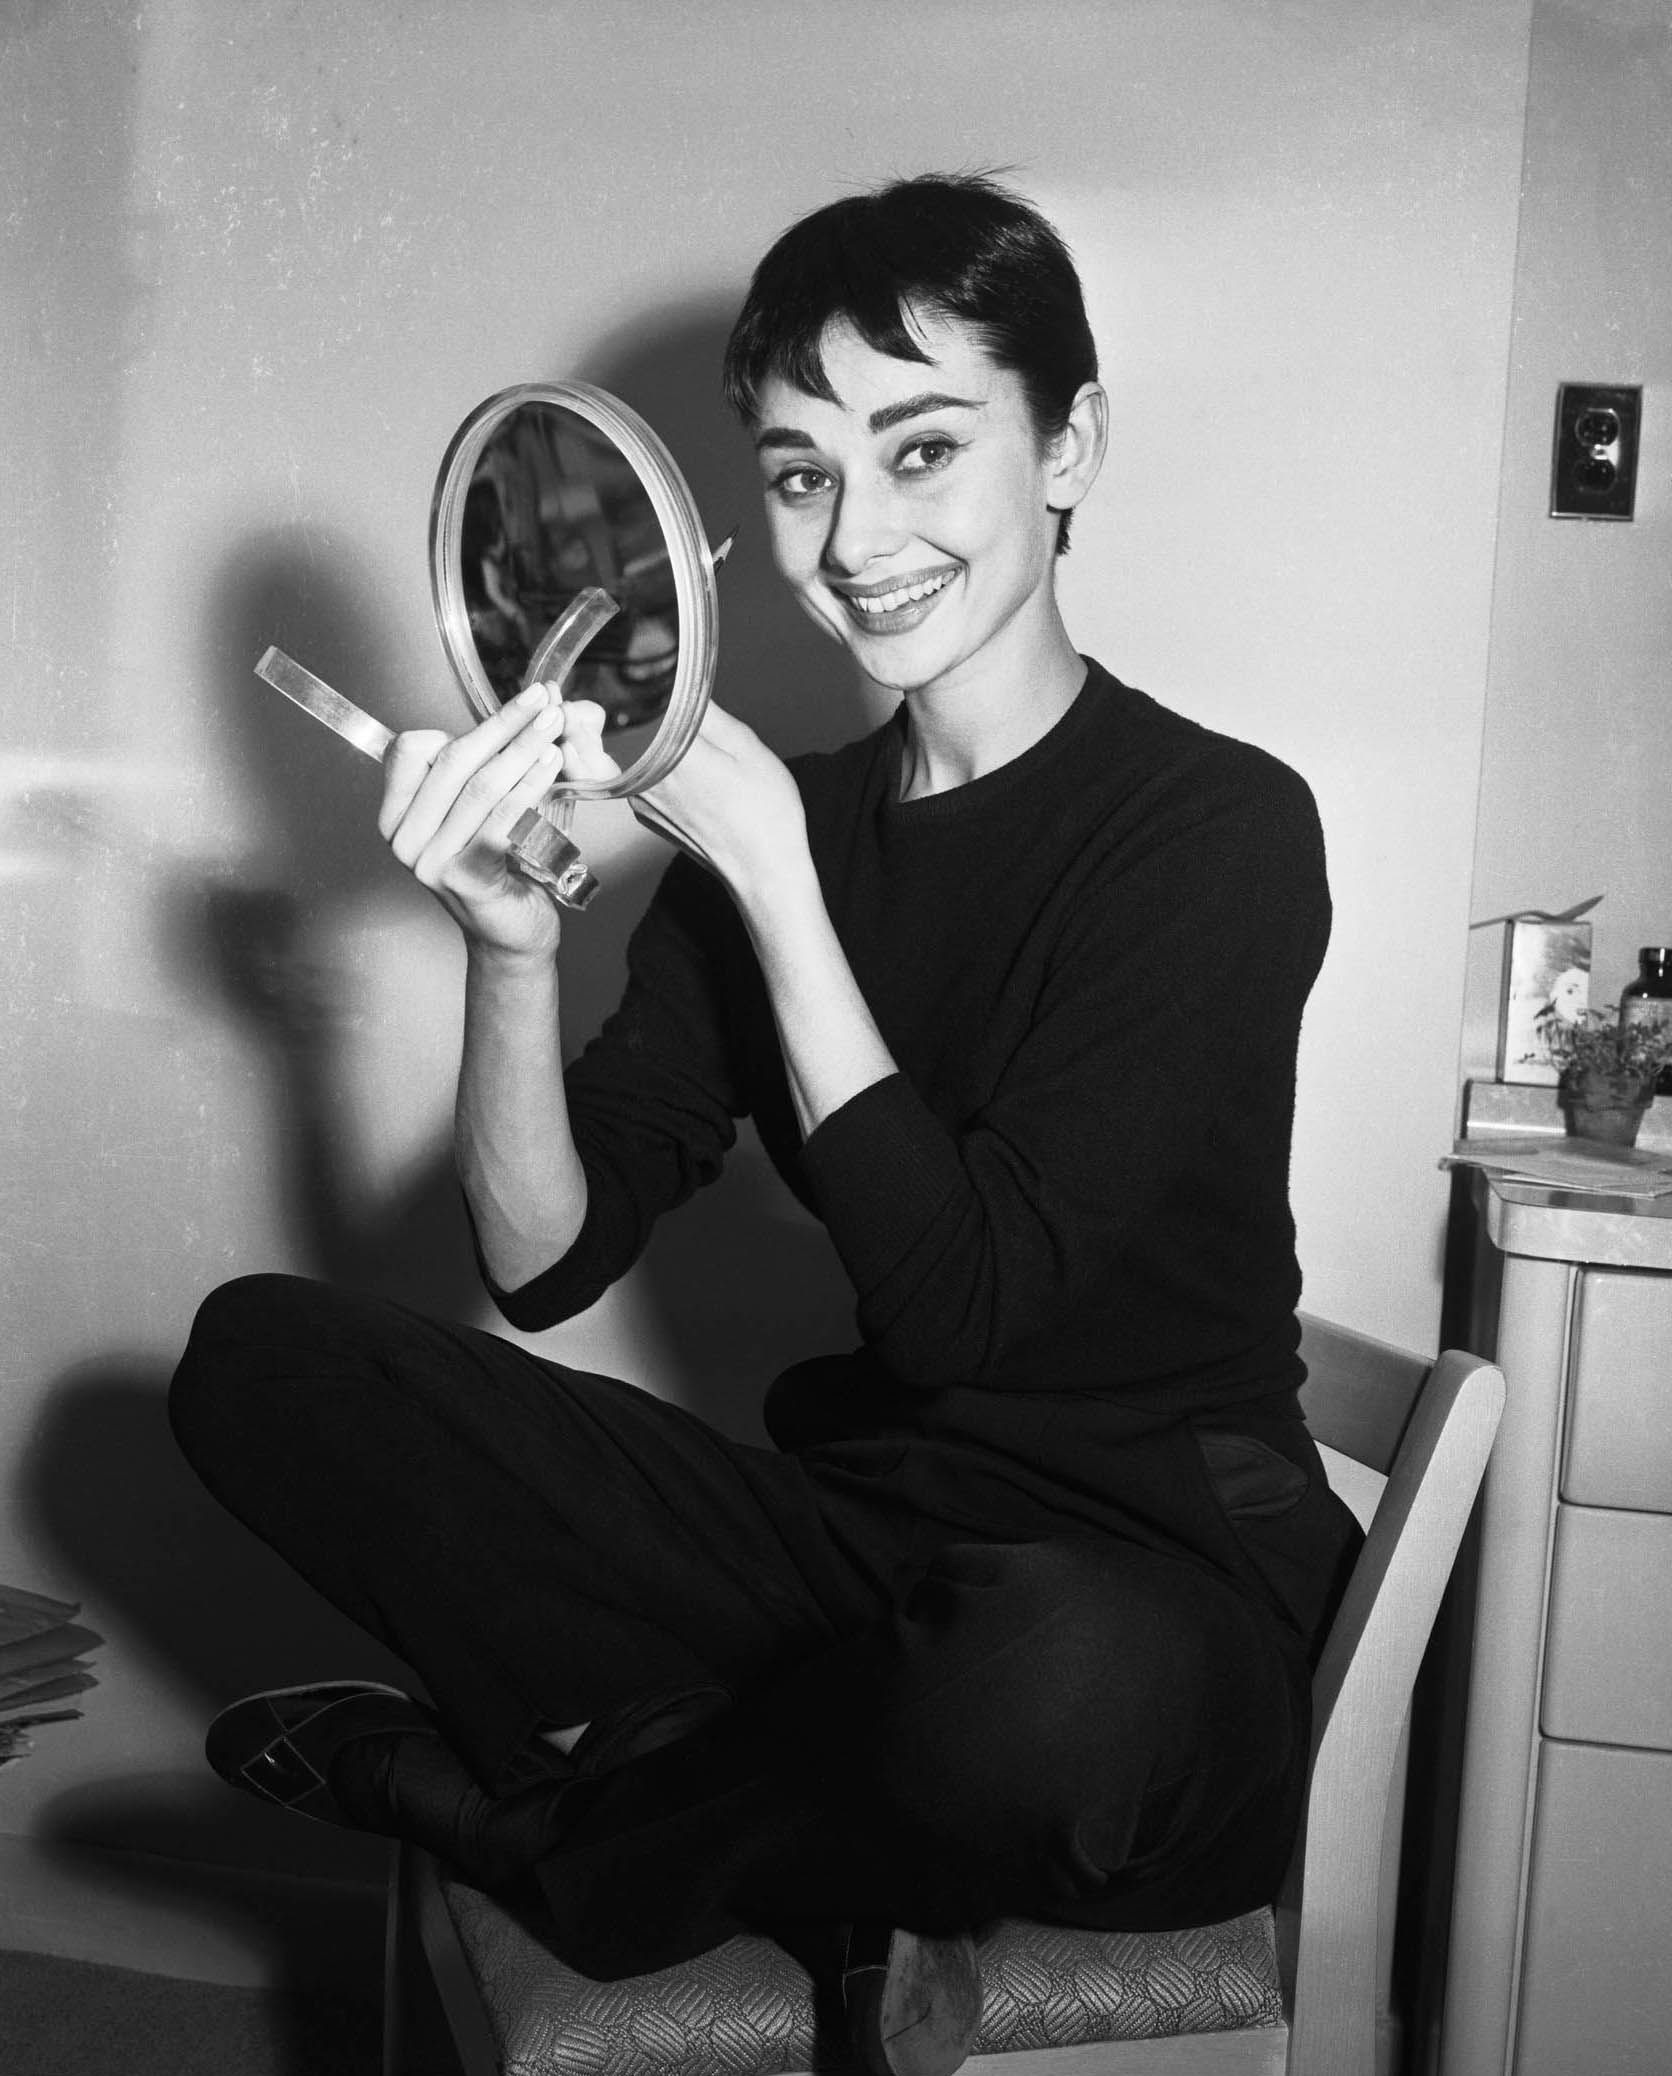 Audrey Hepburn (View 3 of 20)